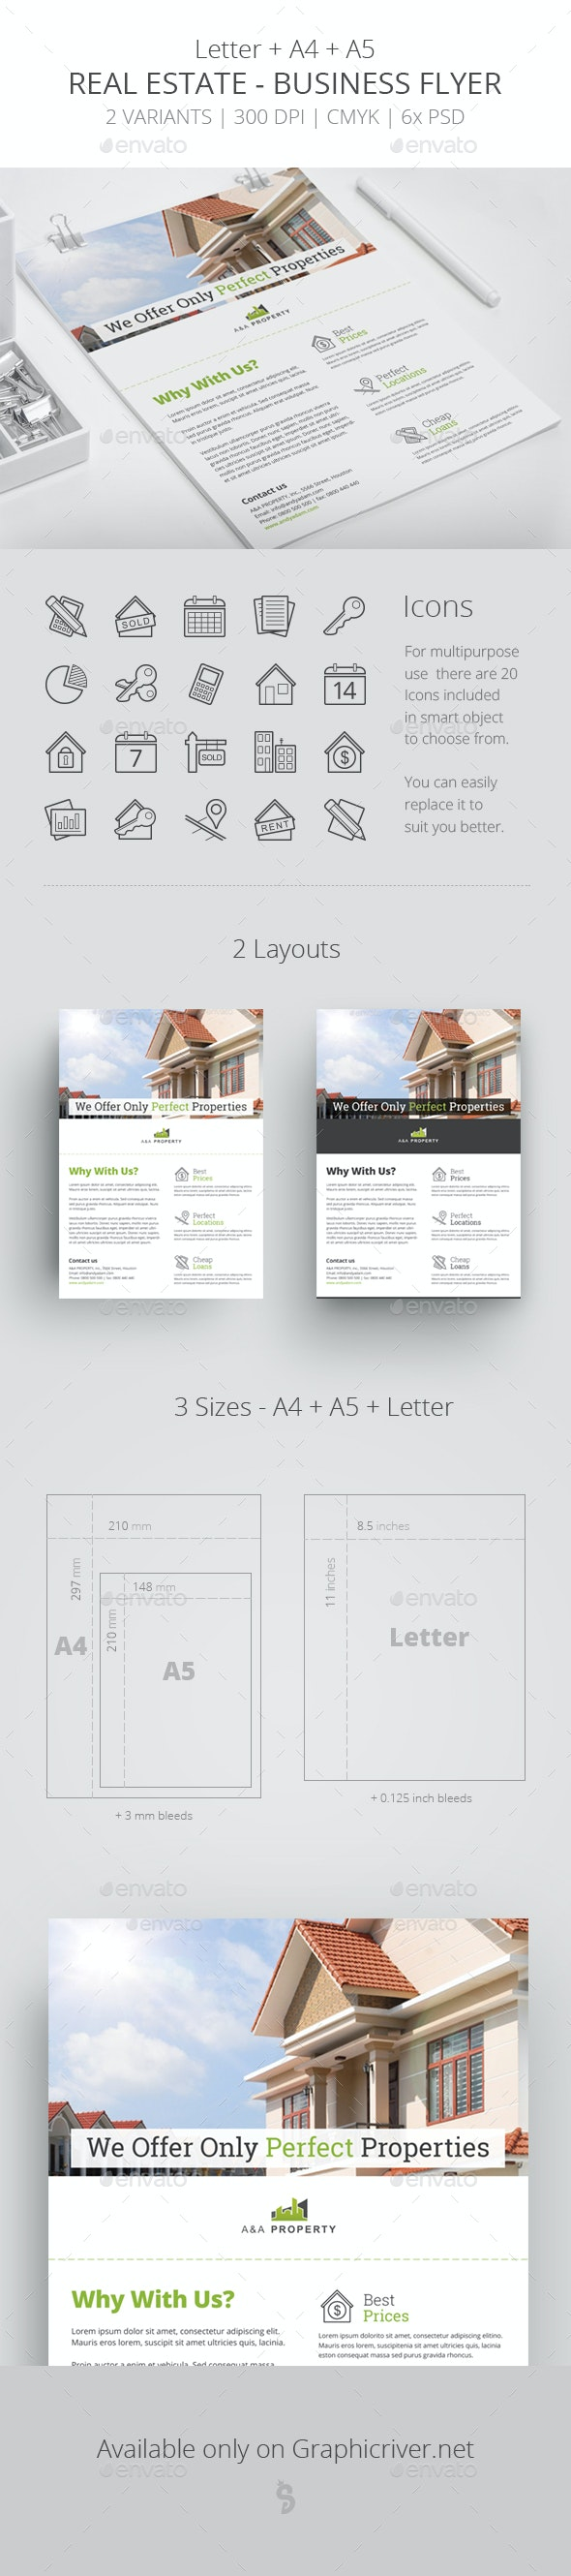 Real Estate - Business Flyer Template 2 - Corporate Flyers